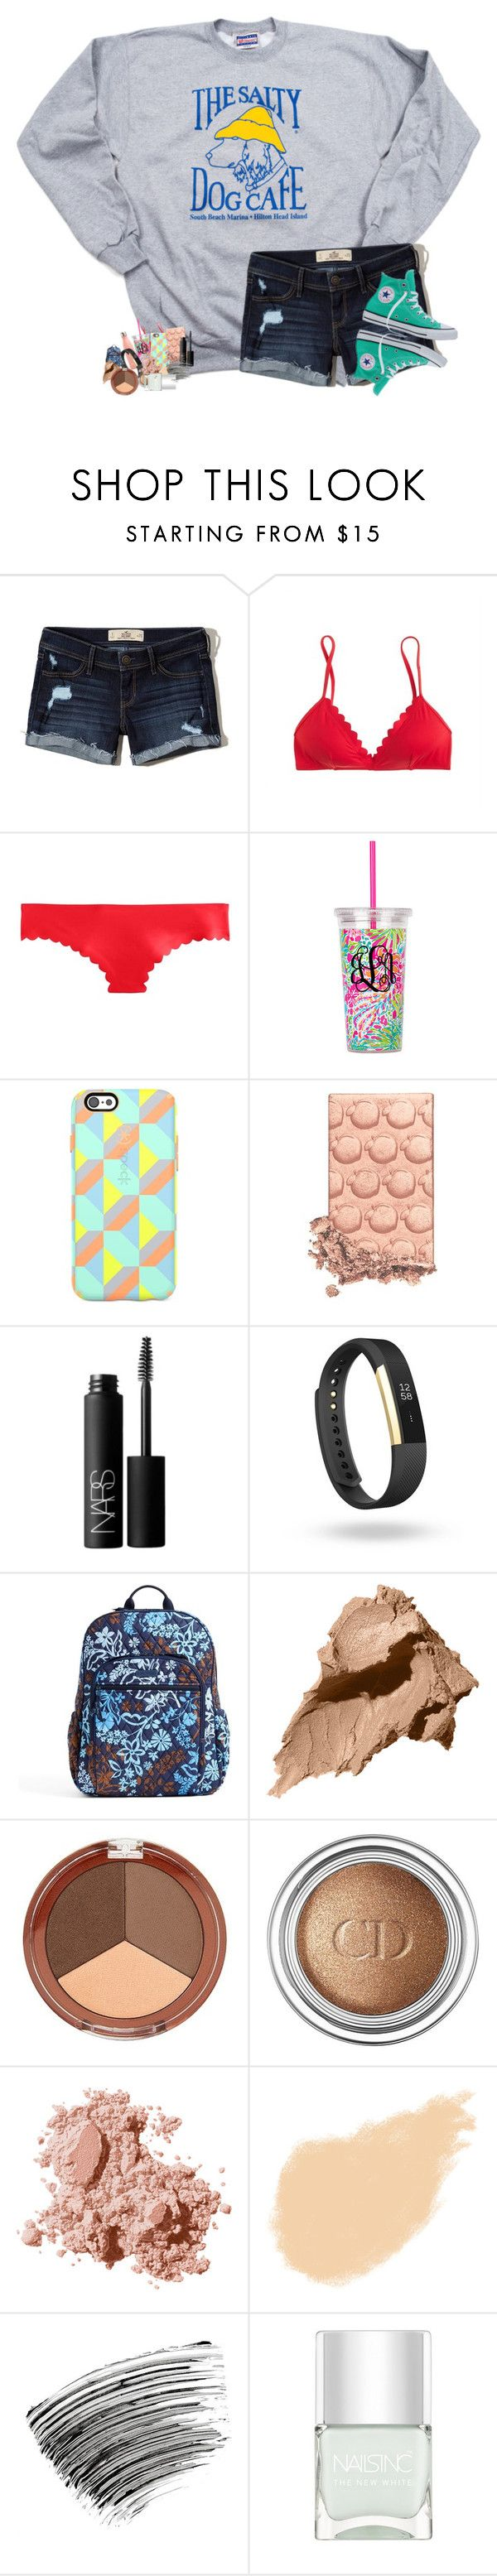 """sick"" by southernmermaid ❤ liked on Polyvore featuring Hollister Co., J.Crew, Speck, NARS Cosmetics, Fitbit, Vera Bradley, Bobbi Brown Cosmetics, Mineral Fusion, Christian Dior and Nails Inc."